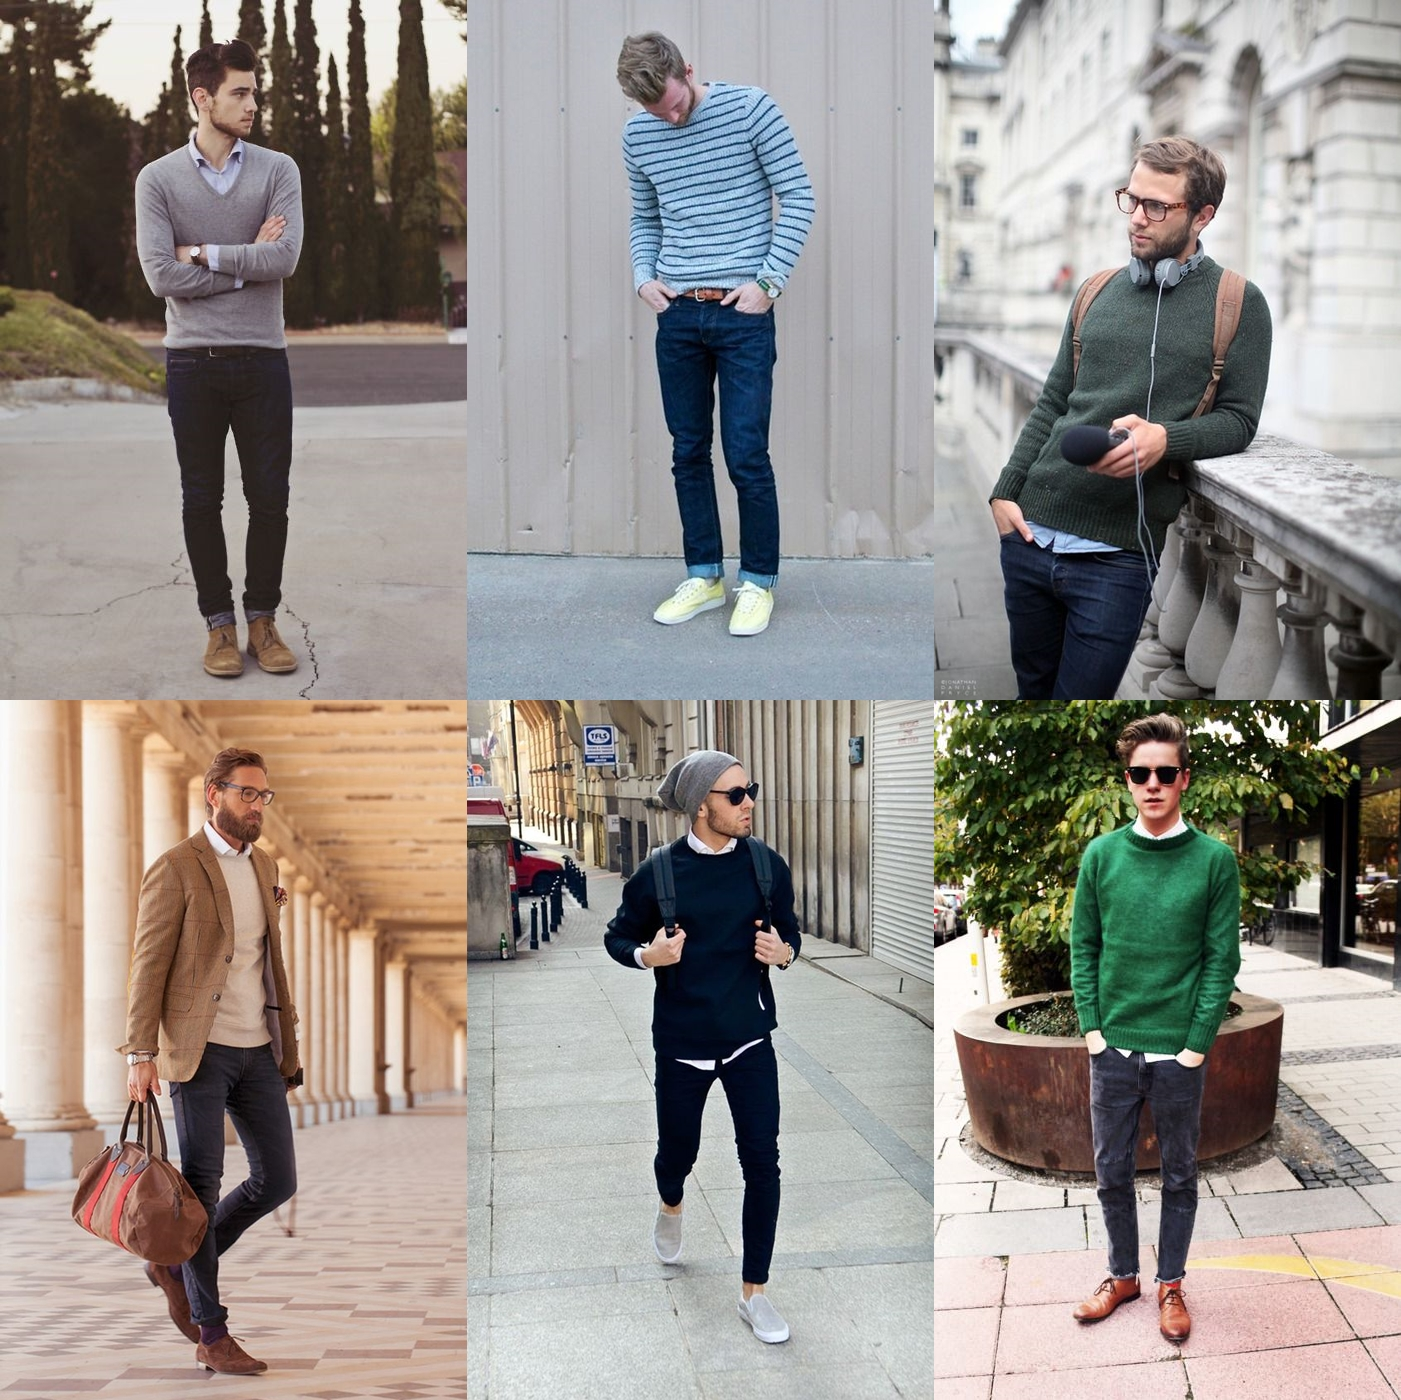 como usar sueter, sueter masculino, pulover men, fashion tips, dicas de moda, alex cursino, moda sem censura, blog de moda, digital influencer, youtuber, menswear, 3